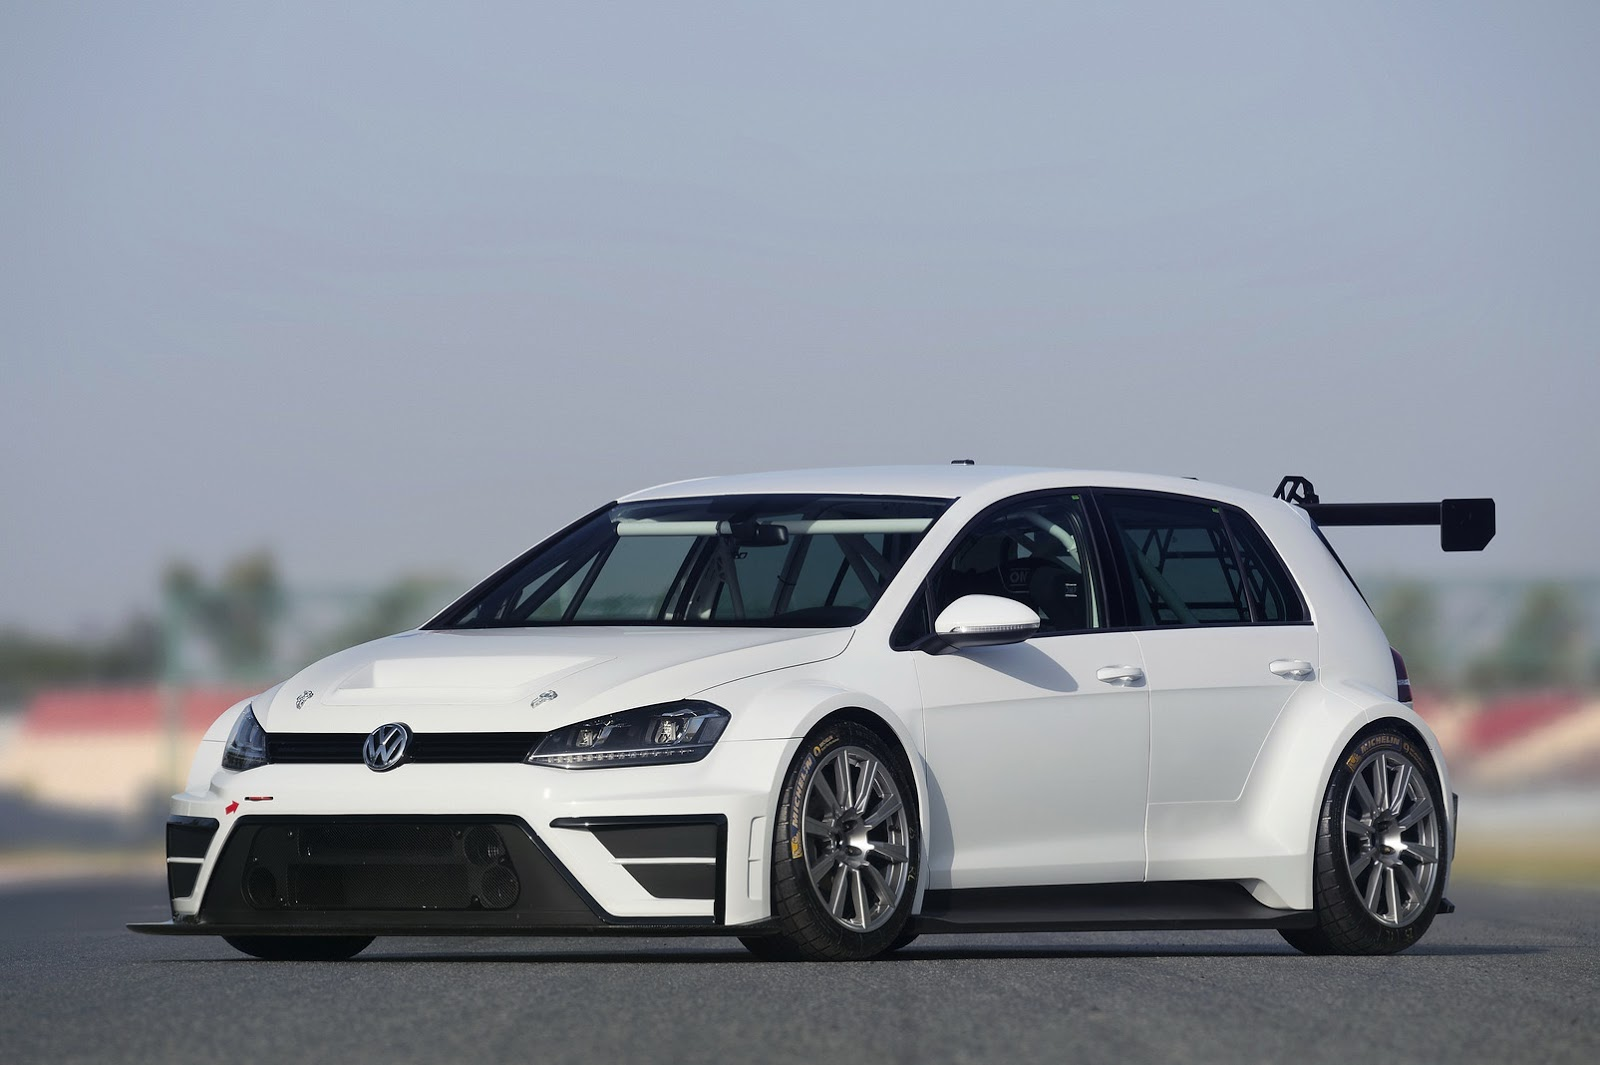 New Vw Golf Tcr For The Track Makes R400 Concept Look